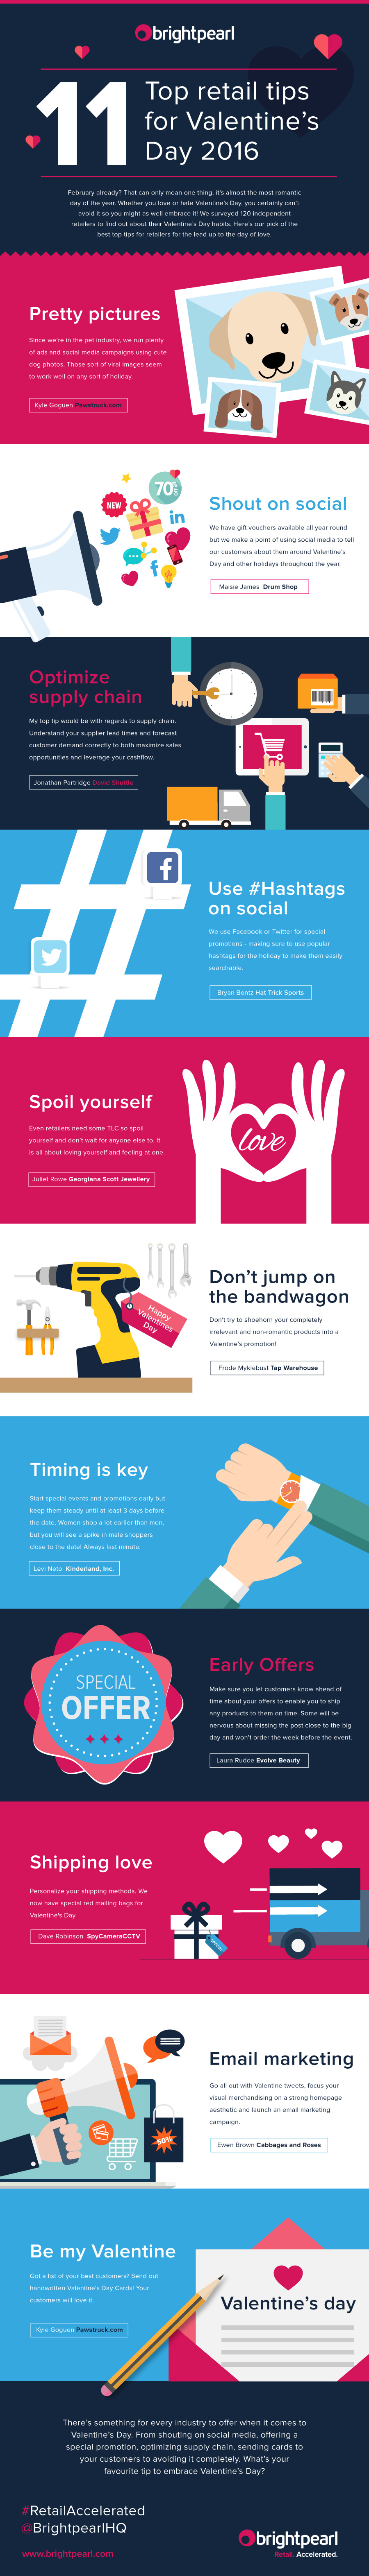 Valentines Day Promotion Amp Inventory Ideas Infographic